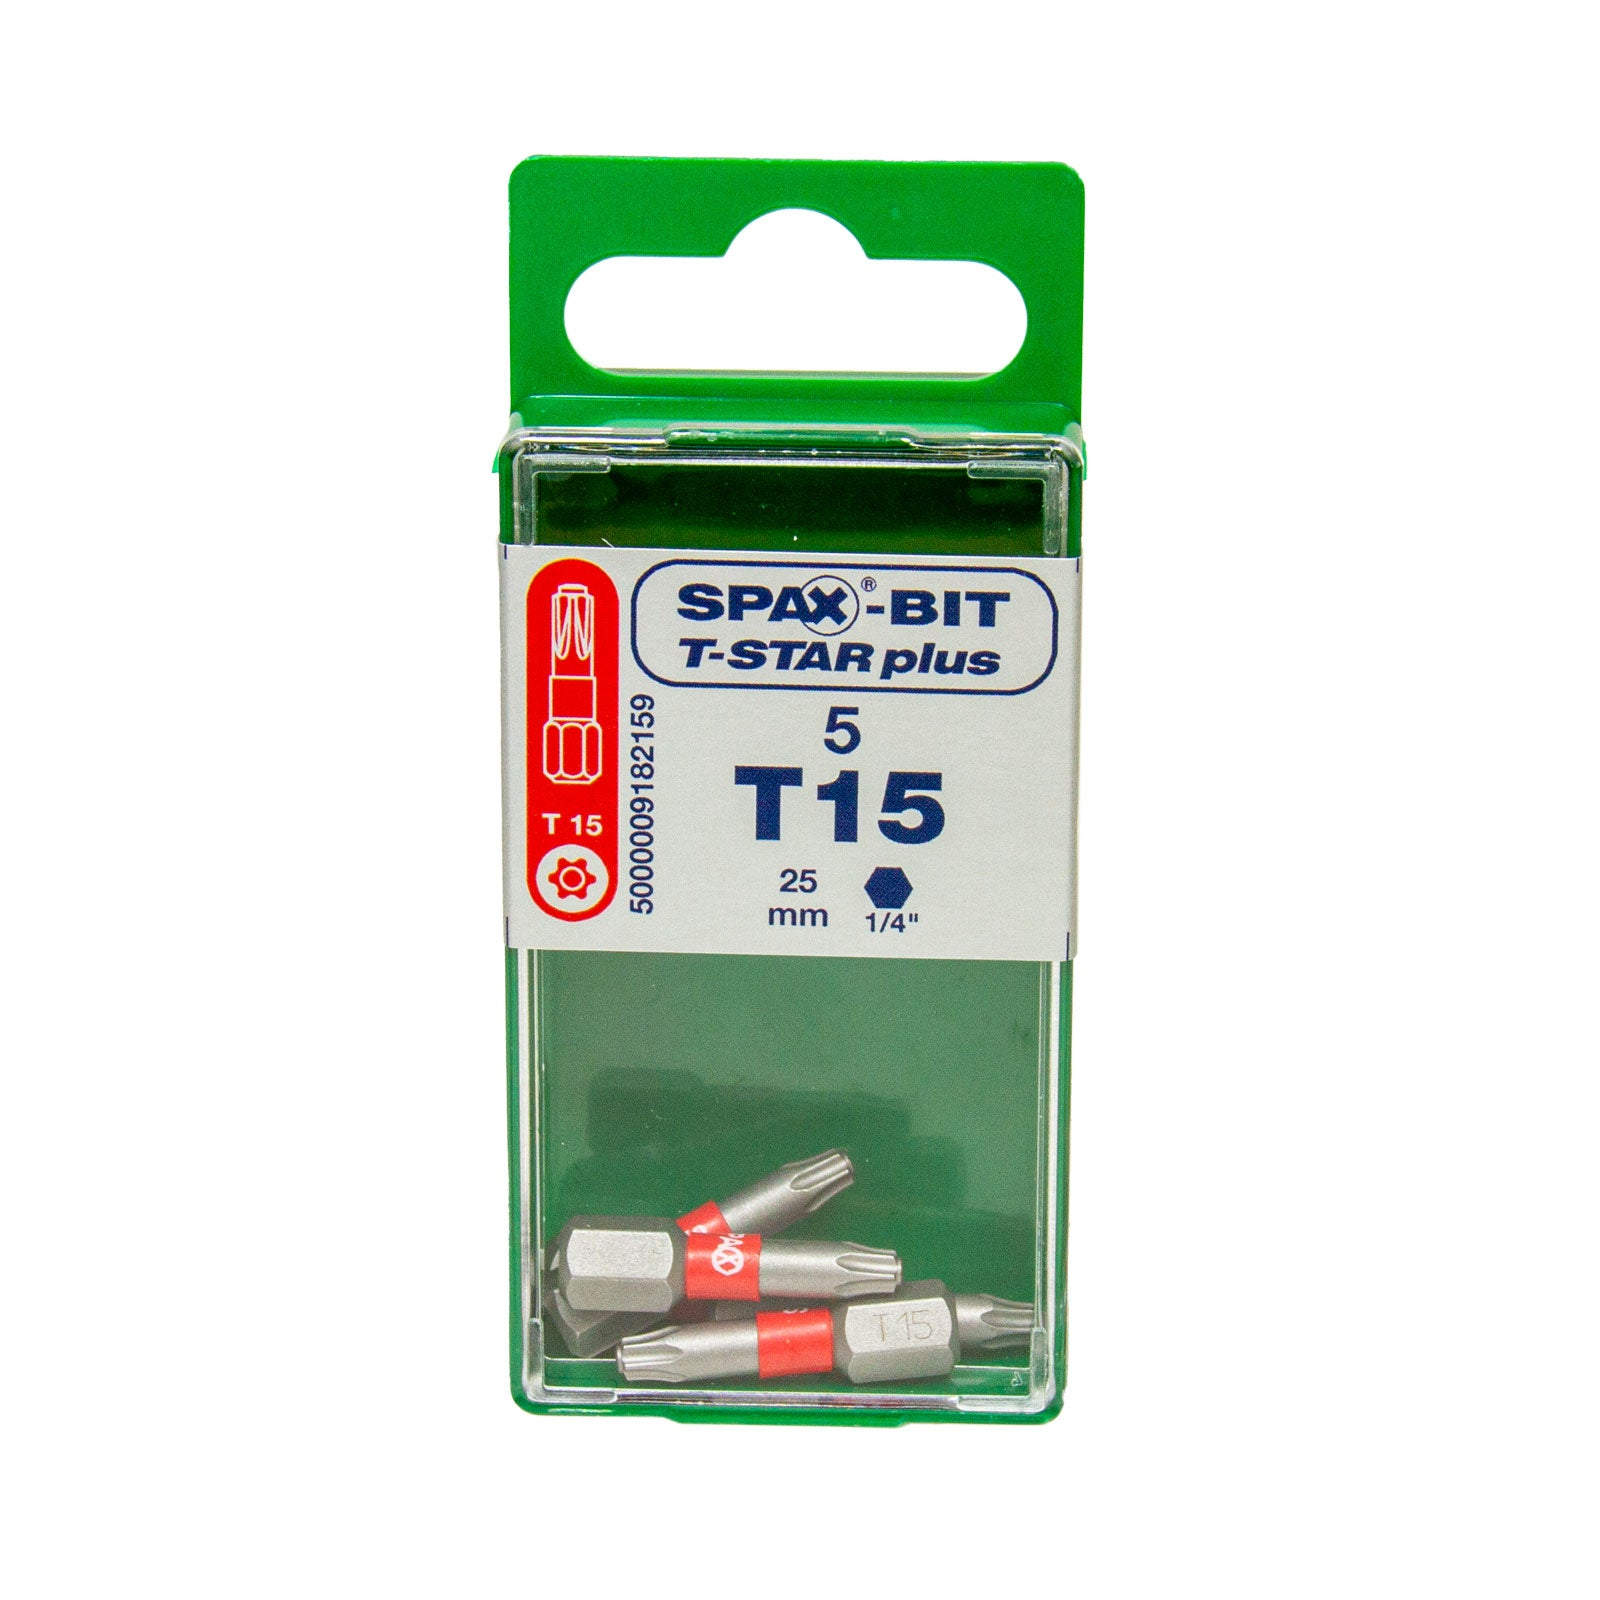 Bits T-Star plus 25 mm, 5 Bits im Spax Cut-Case, T10 | T15 | T20 | T25 | T30 | T40